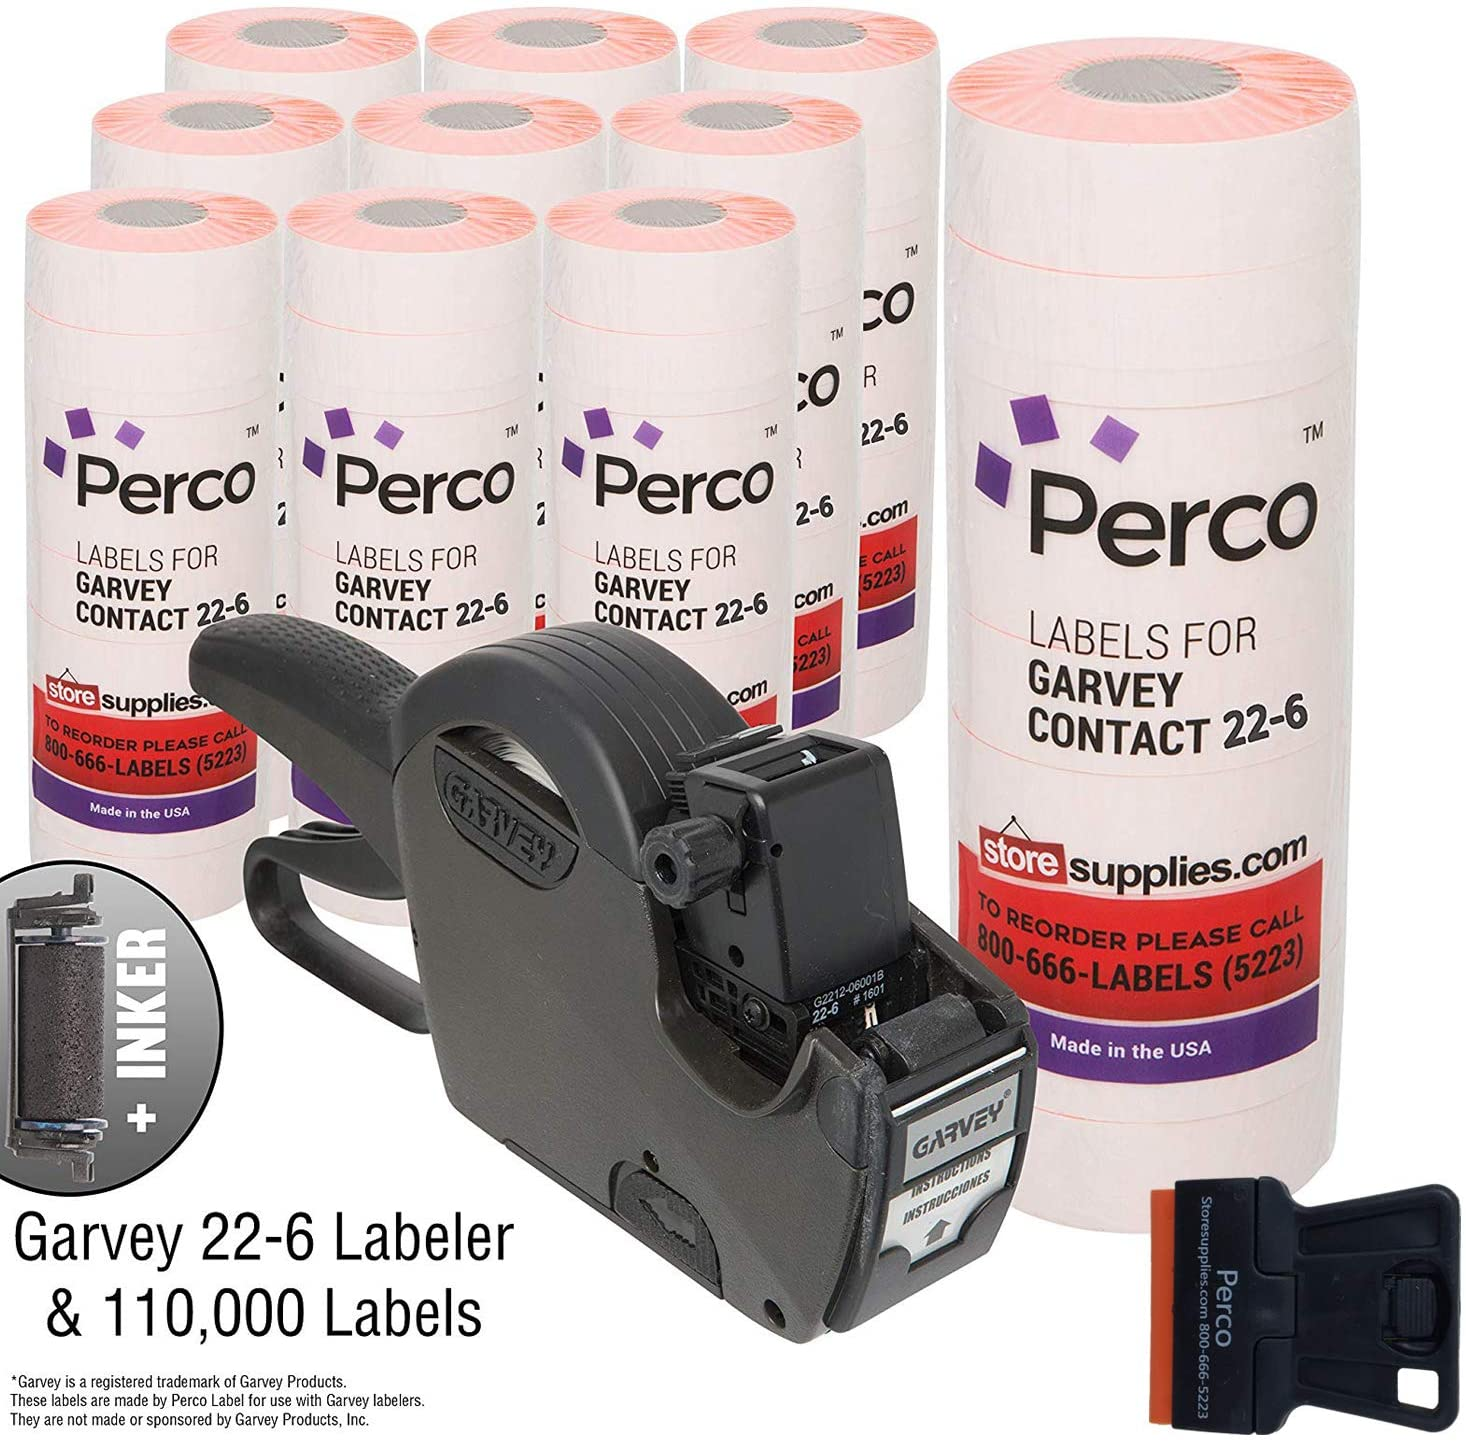 Garvey 22-6 Pricing Gun with Labels Value Pack: Includes Garvey 22-6 Price Gun, 110,000 Fluorescent Red Pricemarking Labels, 8 Bonus Inkers